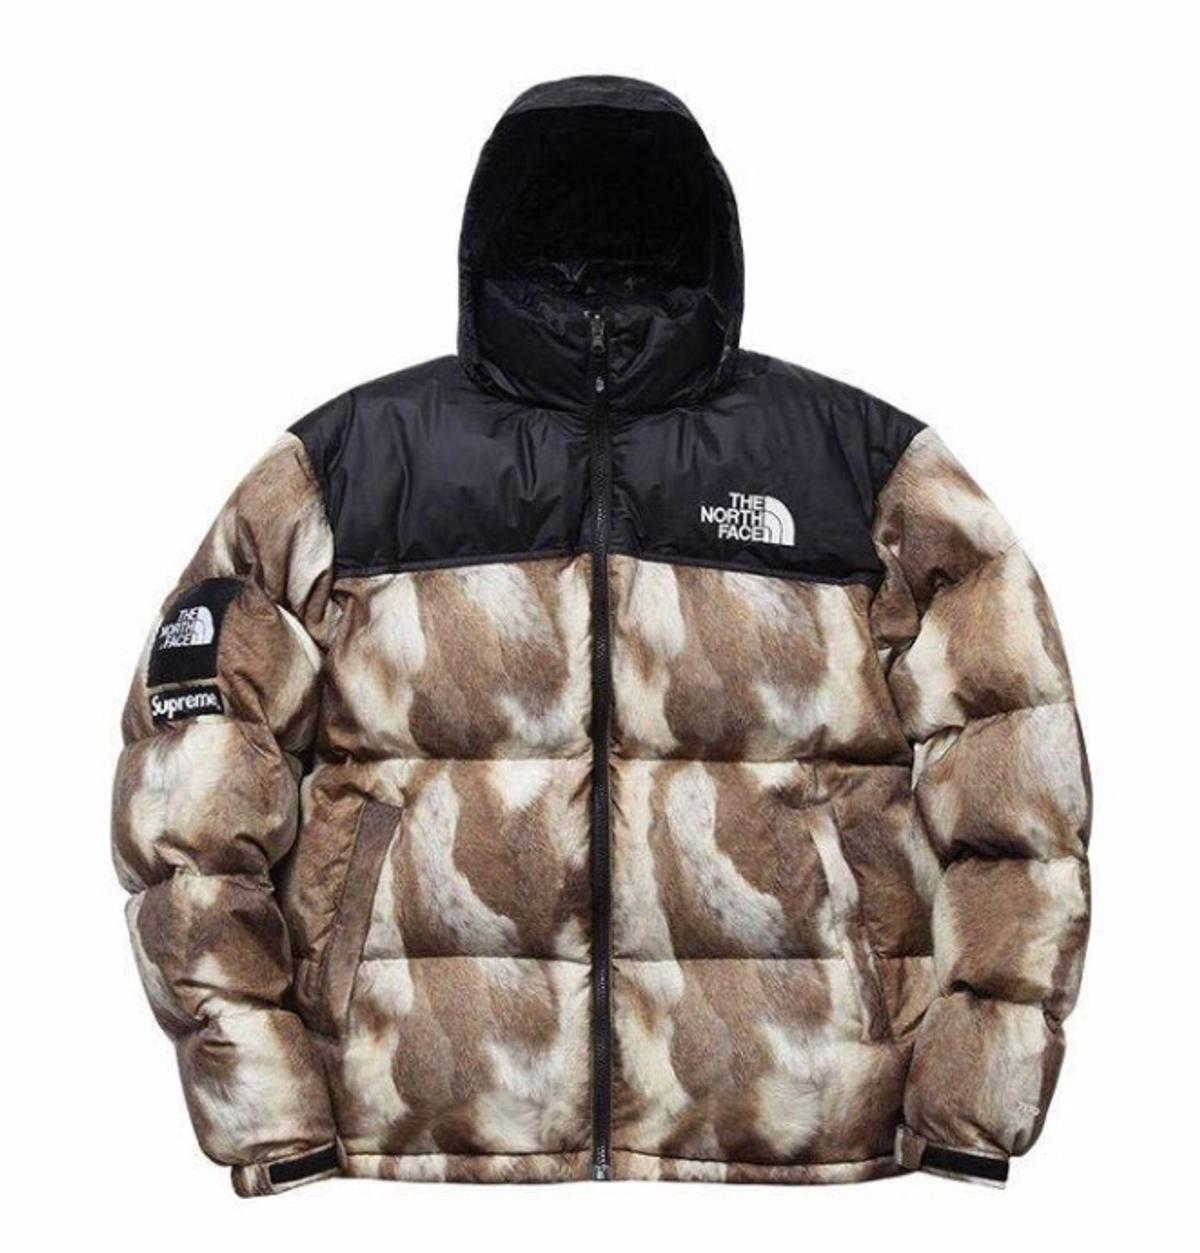 Supreme x The North Face TNF Nuptse Leaves Jacket size XL